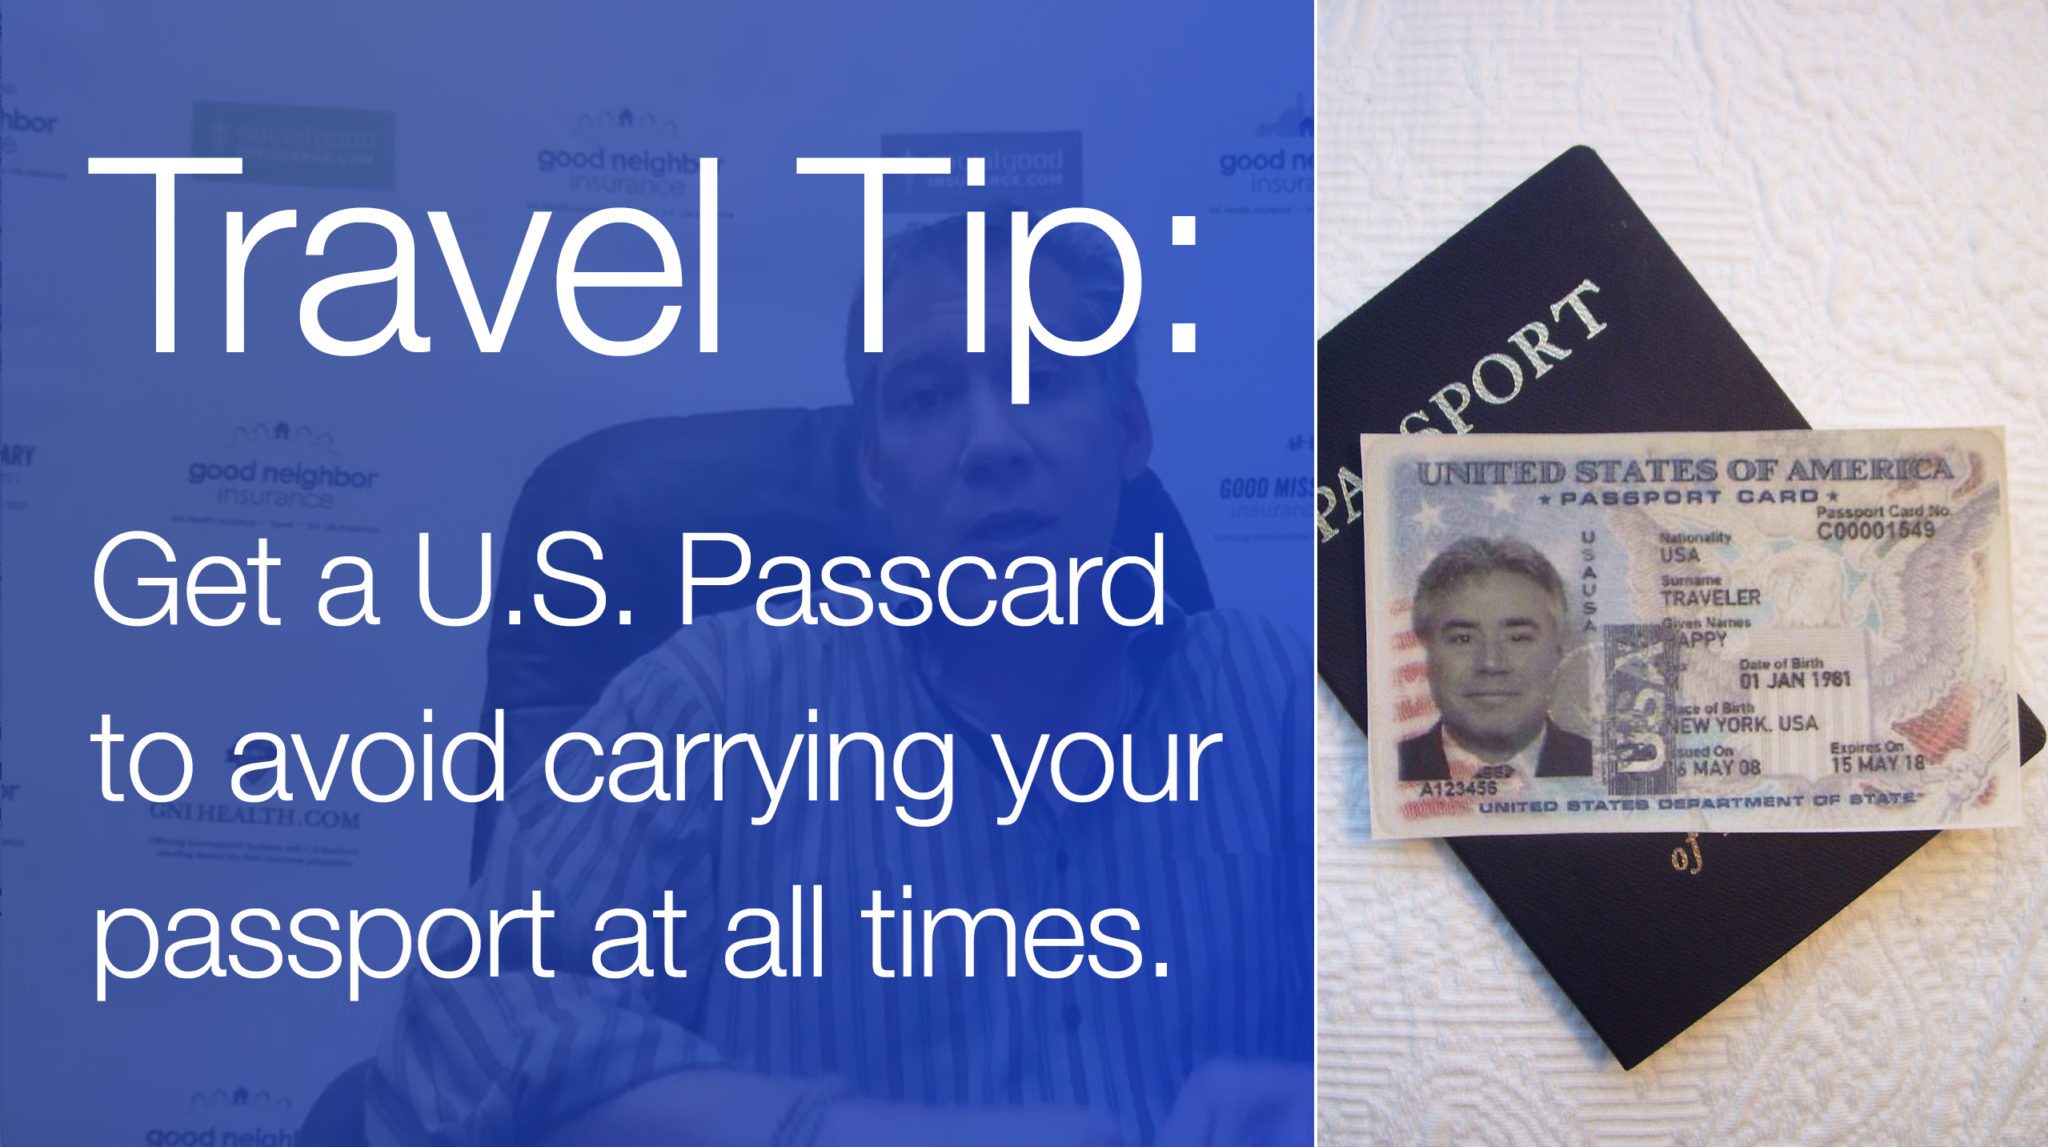 Reasons for getting a U.S. Passport card or passcard